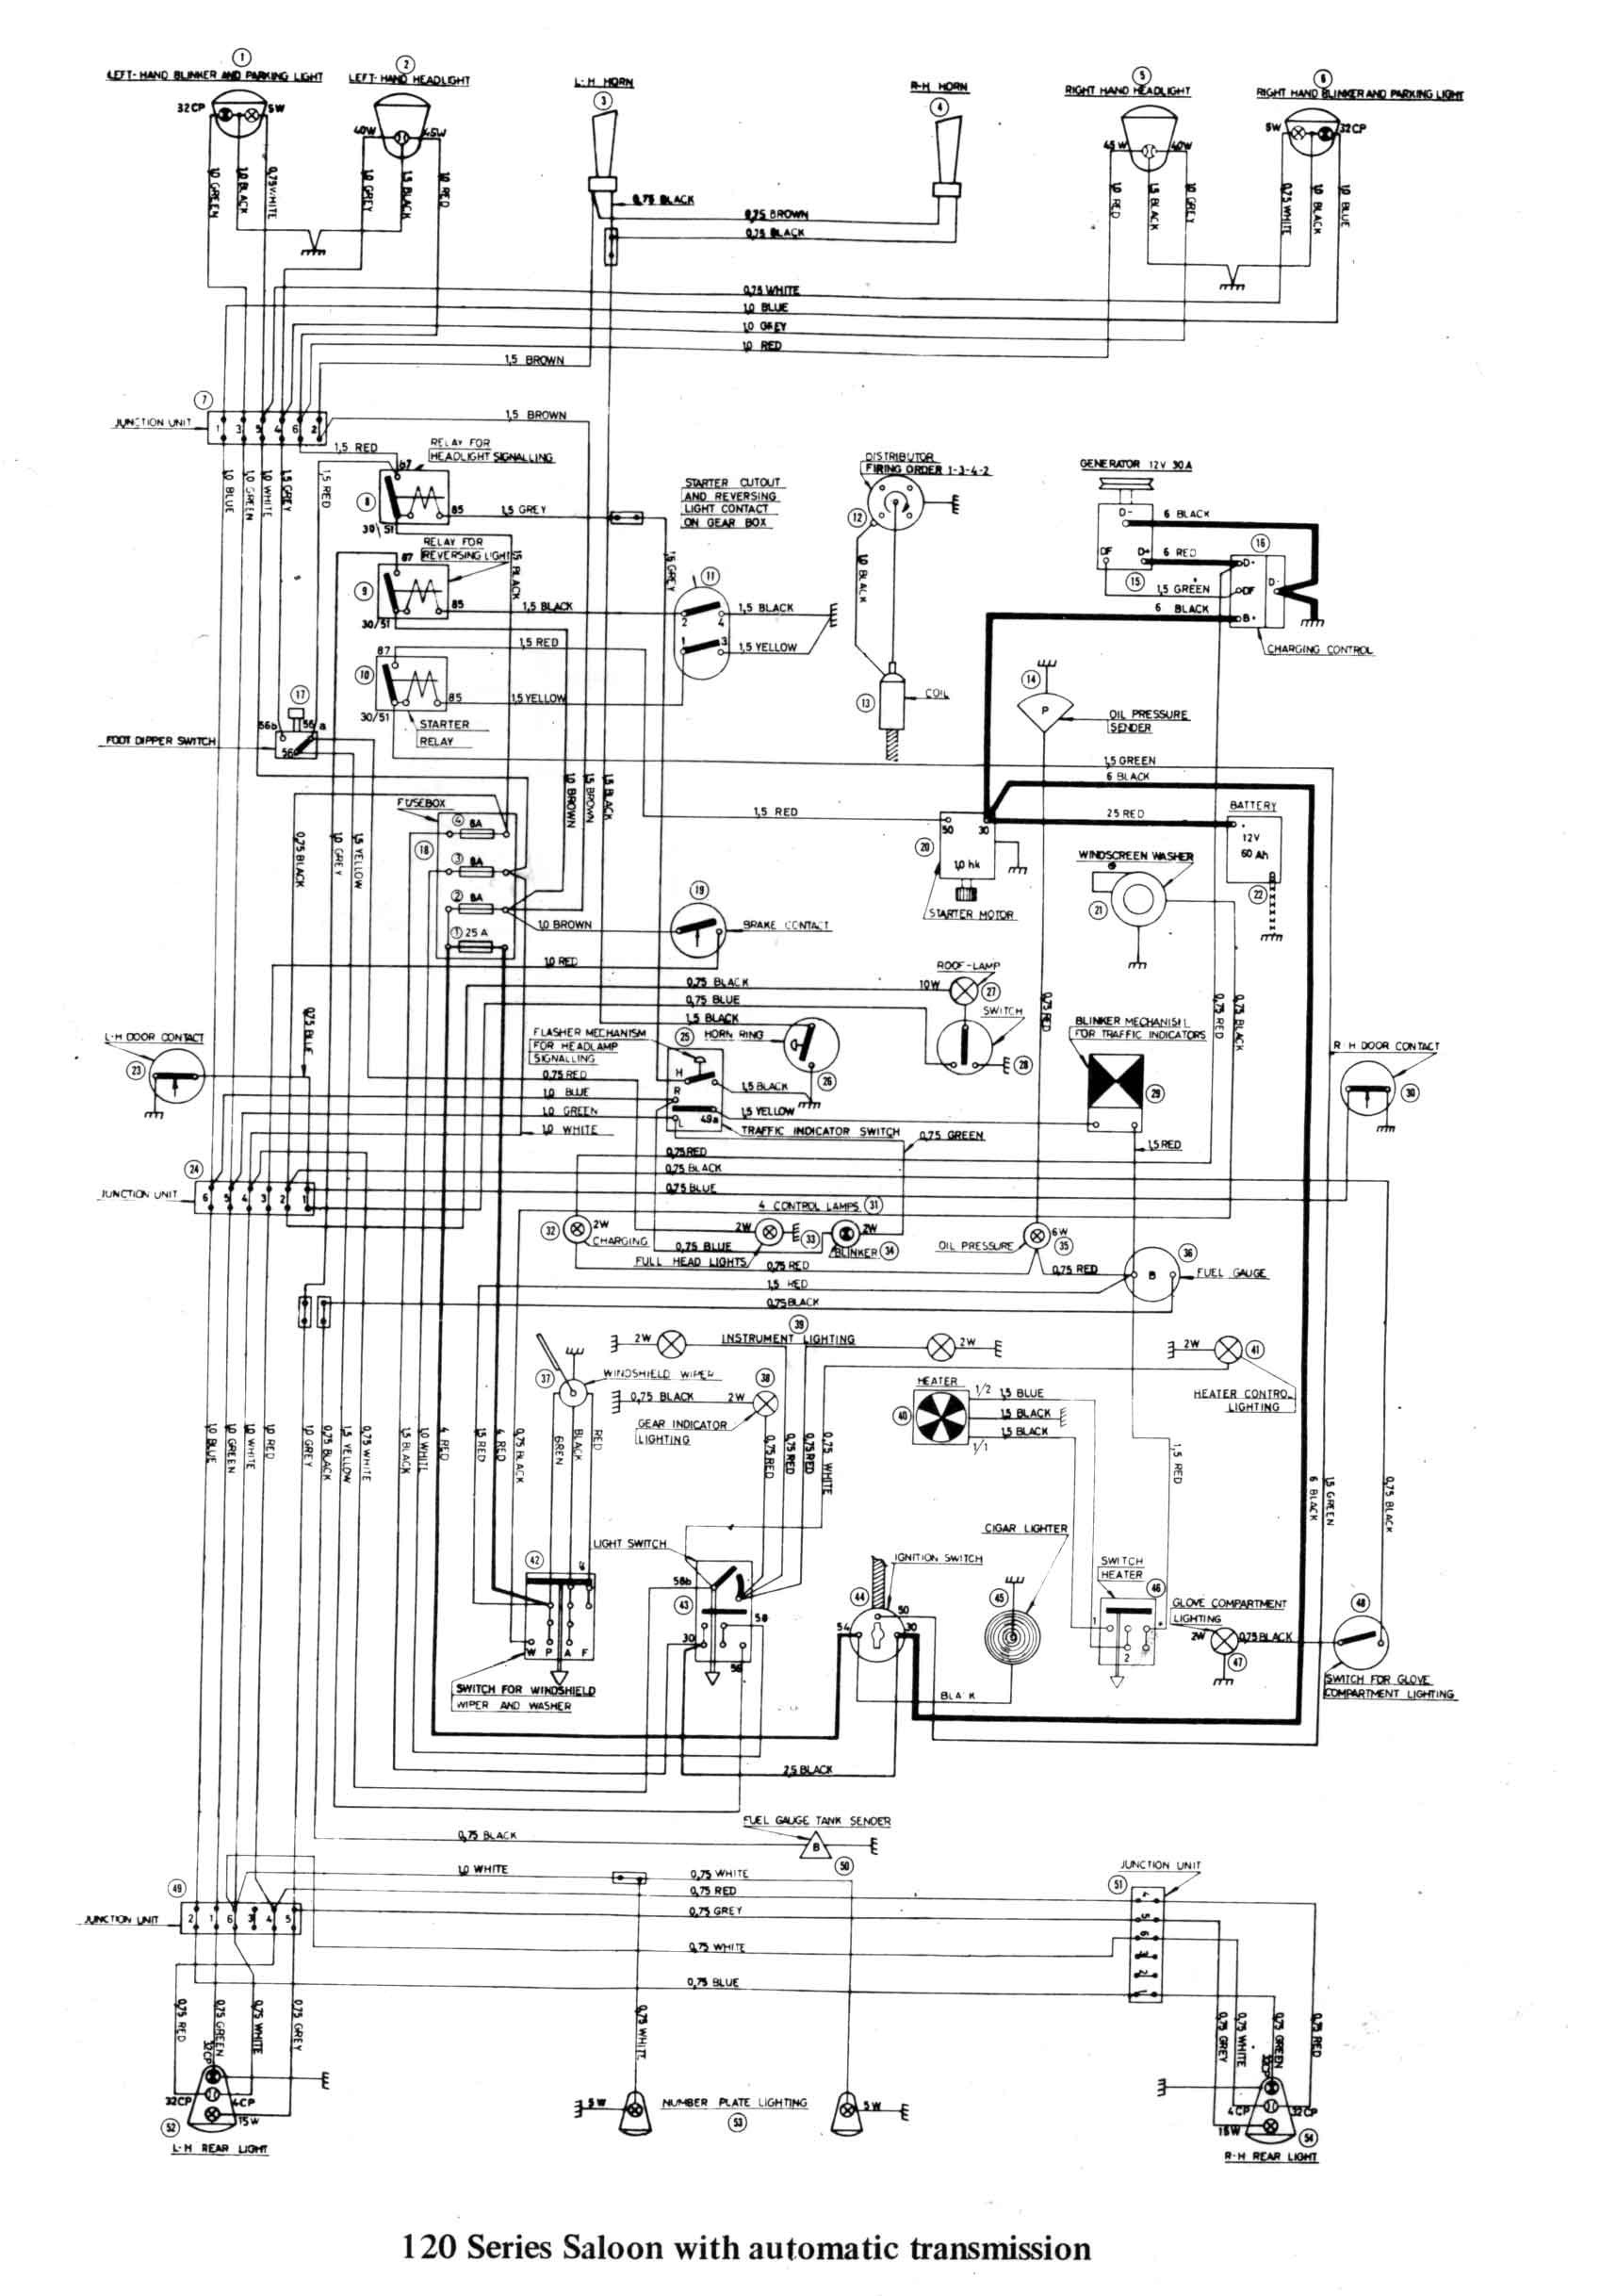 Ford F150 Tail Light Wiring Diagram Volvo Lights Wiring Diagram Custom Wiring Diagram • Of Ford F150 Tail Light Wiring Diagram 1973 1979 ford Truck Wiring Diagrams & Schematics fordification